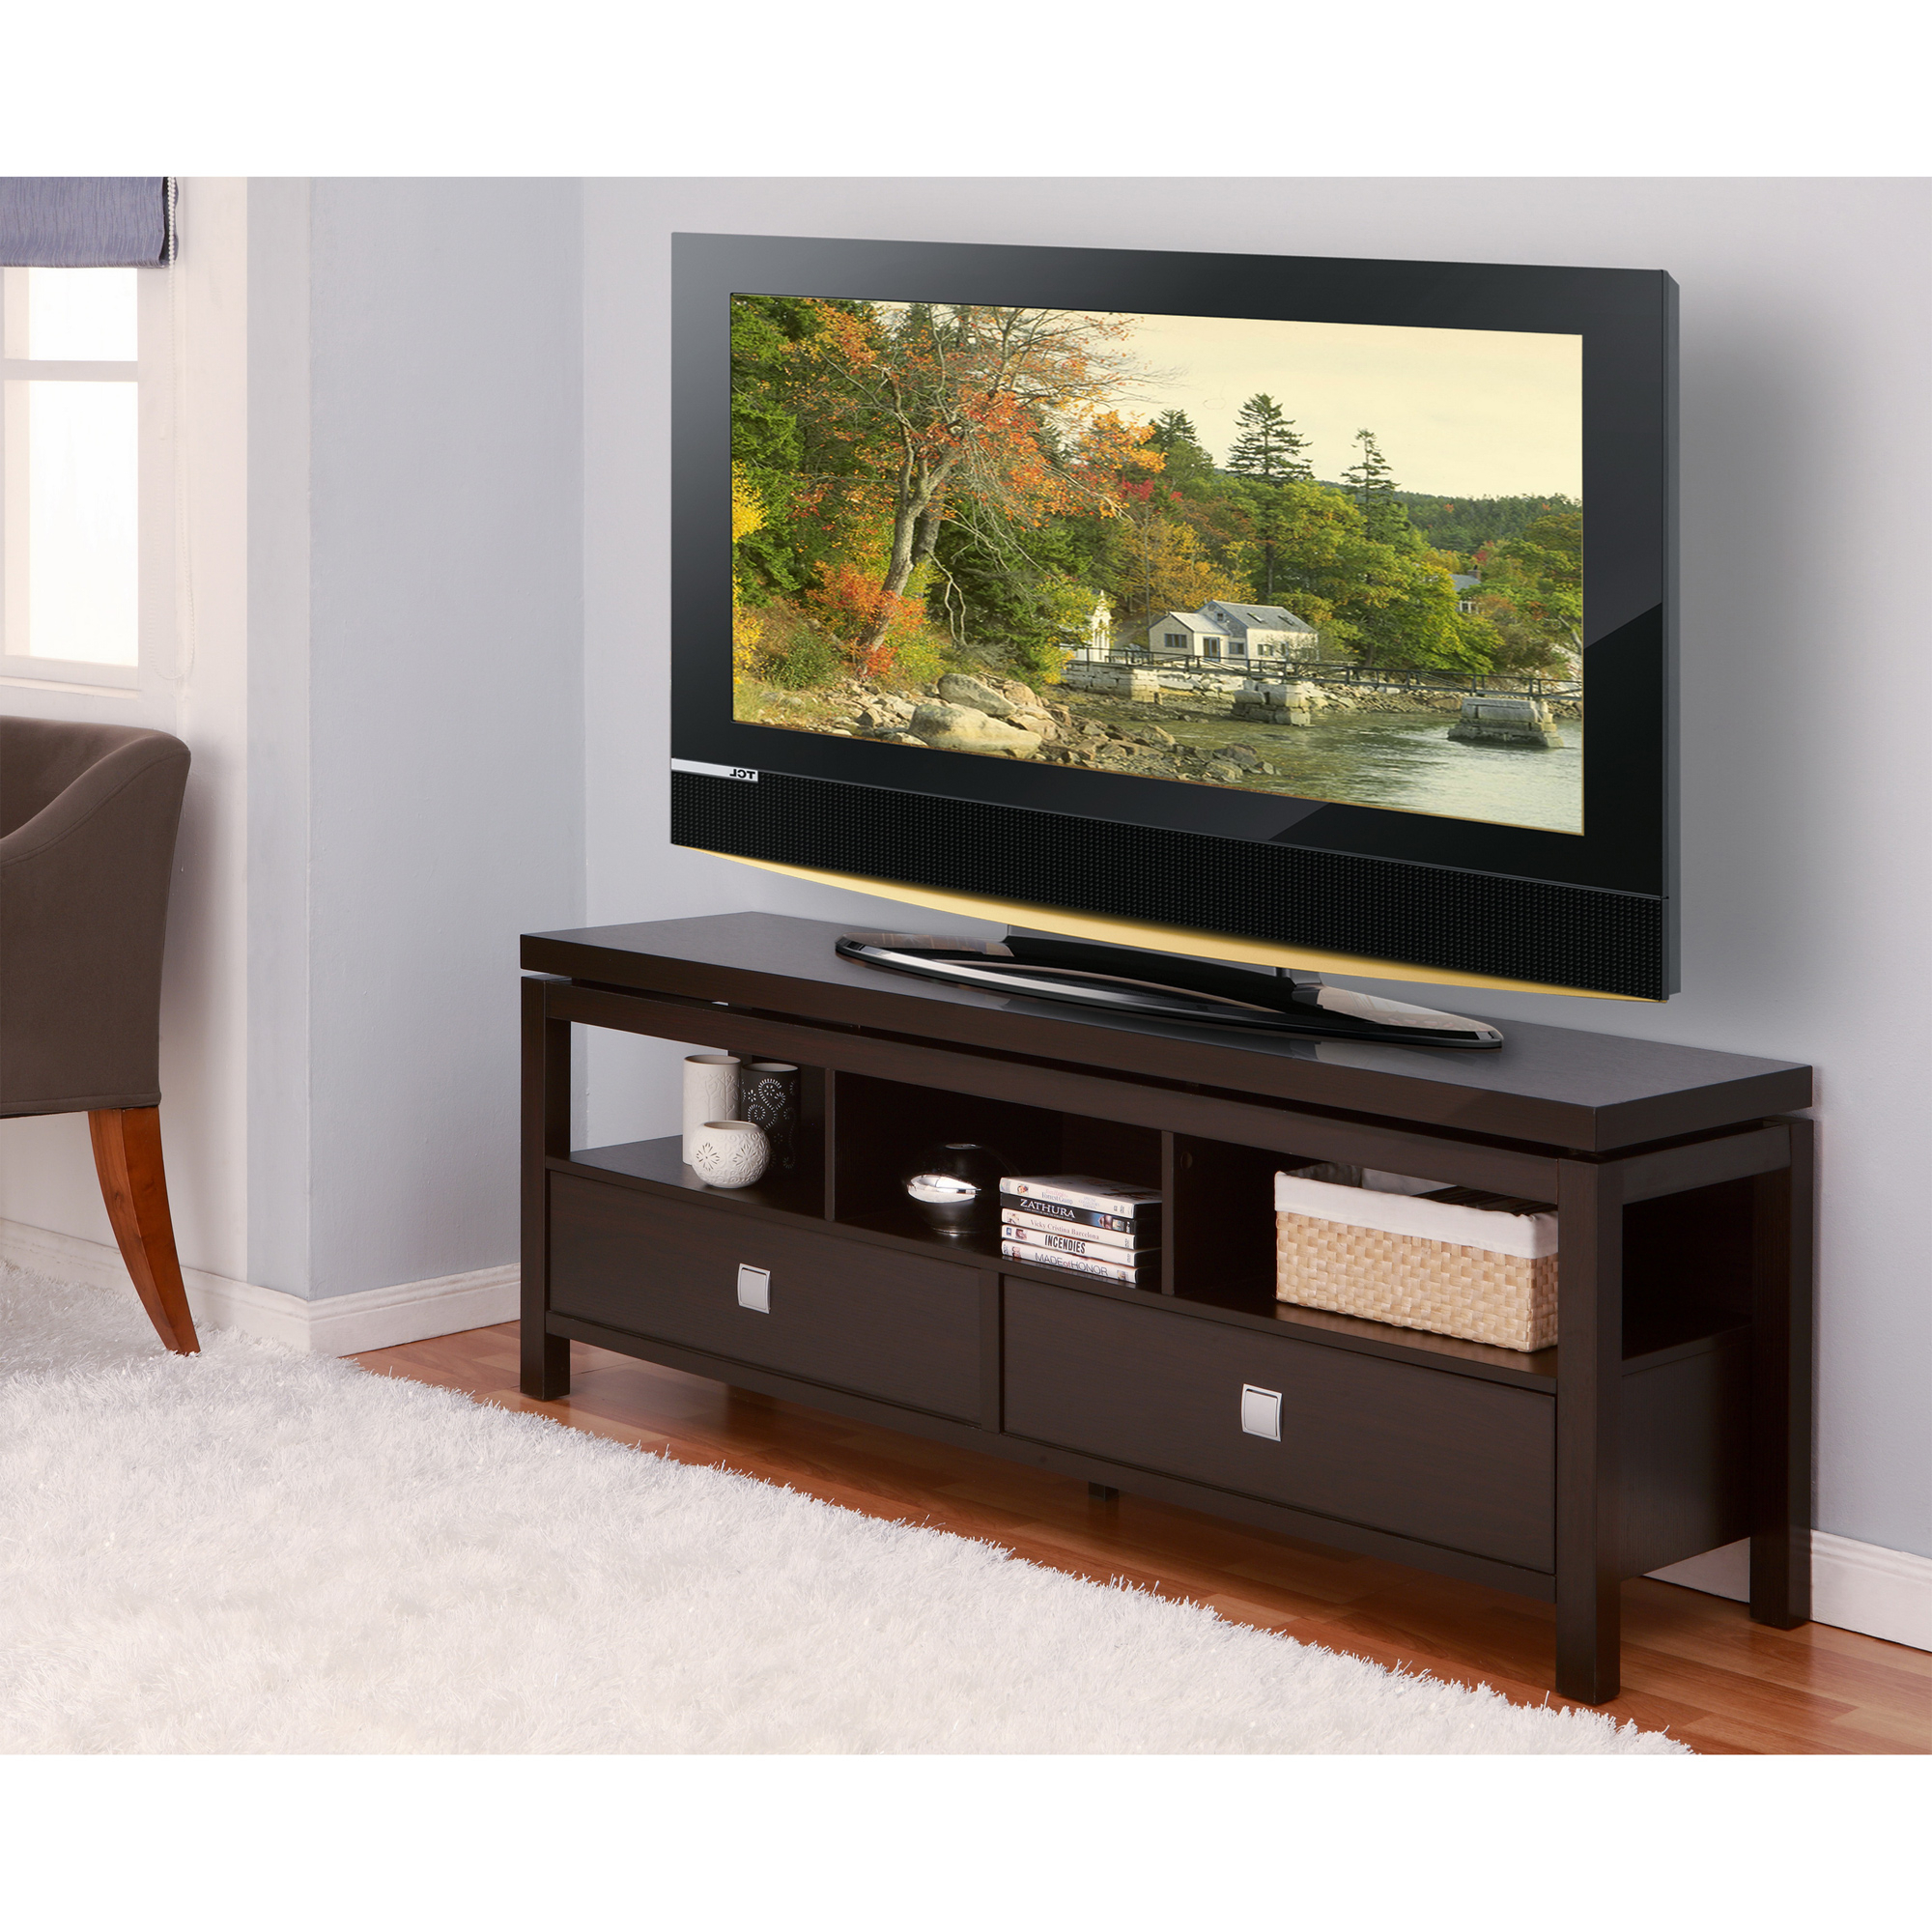 Best Tv Stands Review 65 Inch Stand White 44 50 Walmart Costco Wall for Oxford 60 Inch Tv Stands (Image 8 of 30)